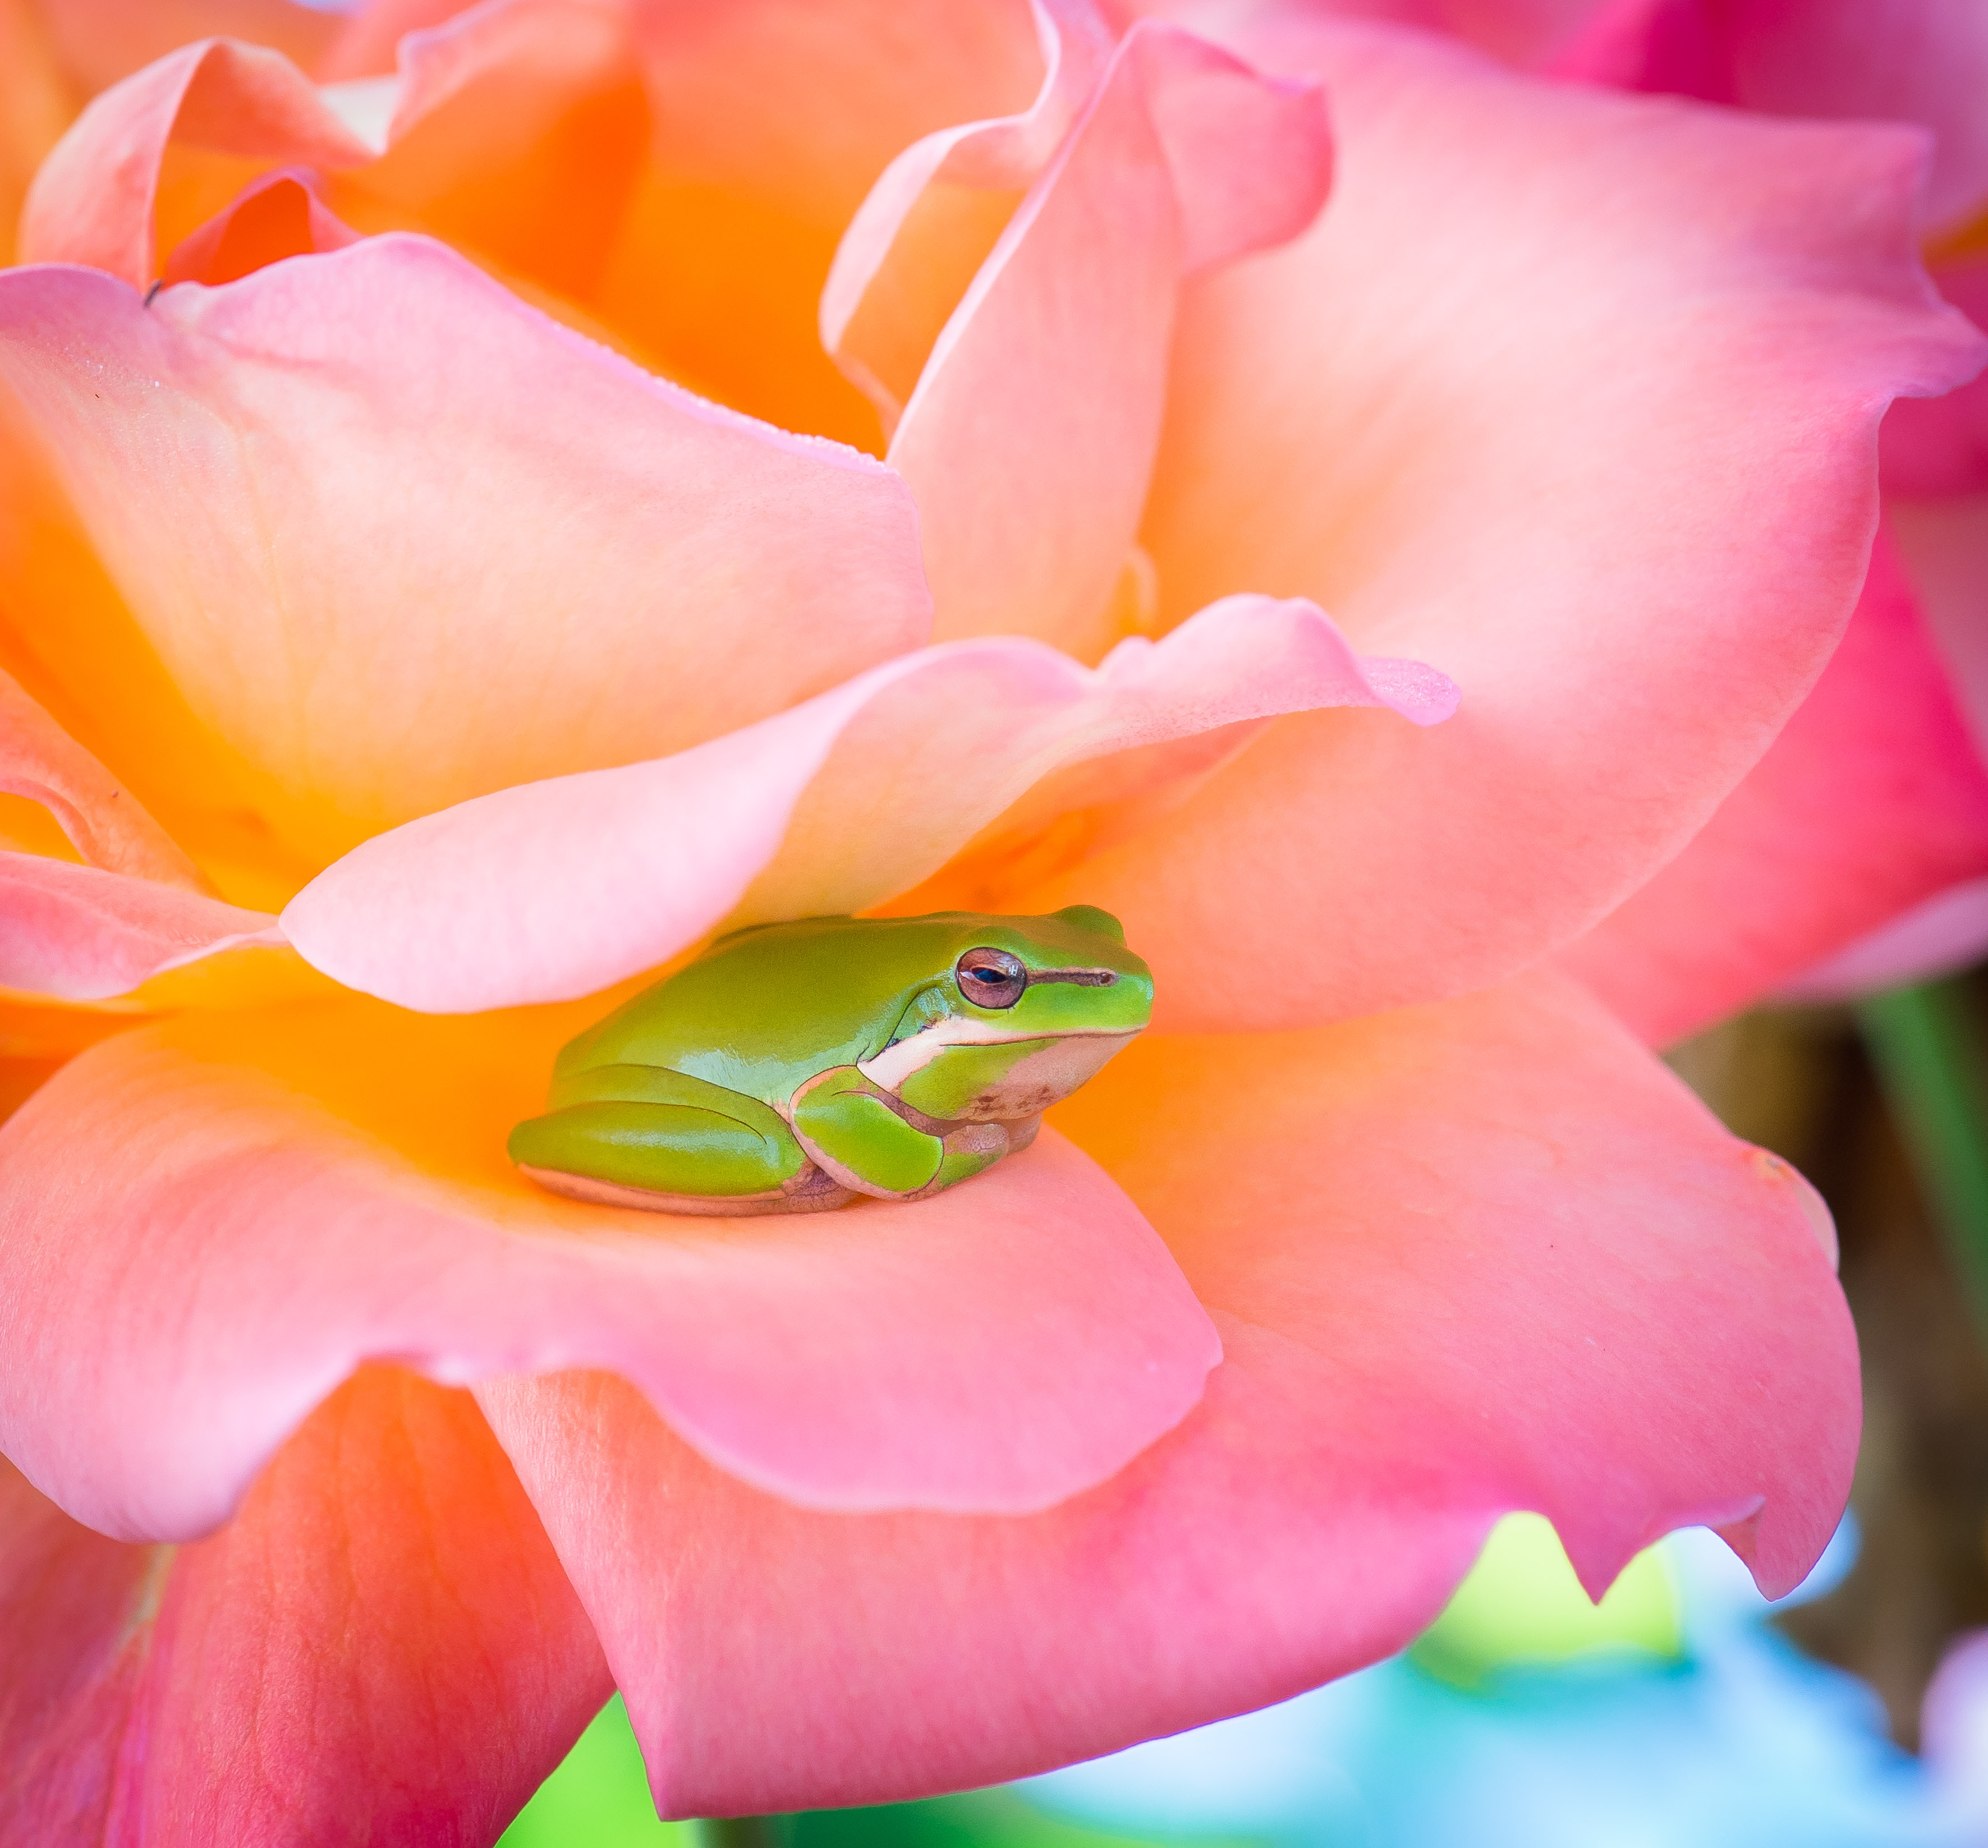 green frog and pink rose